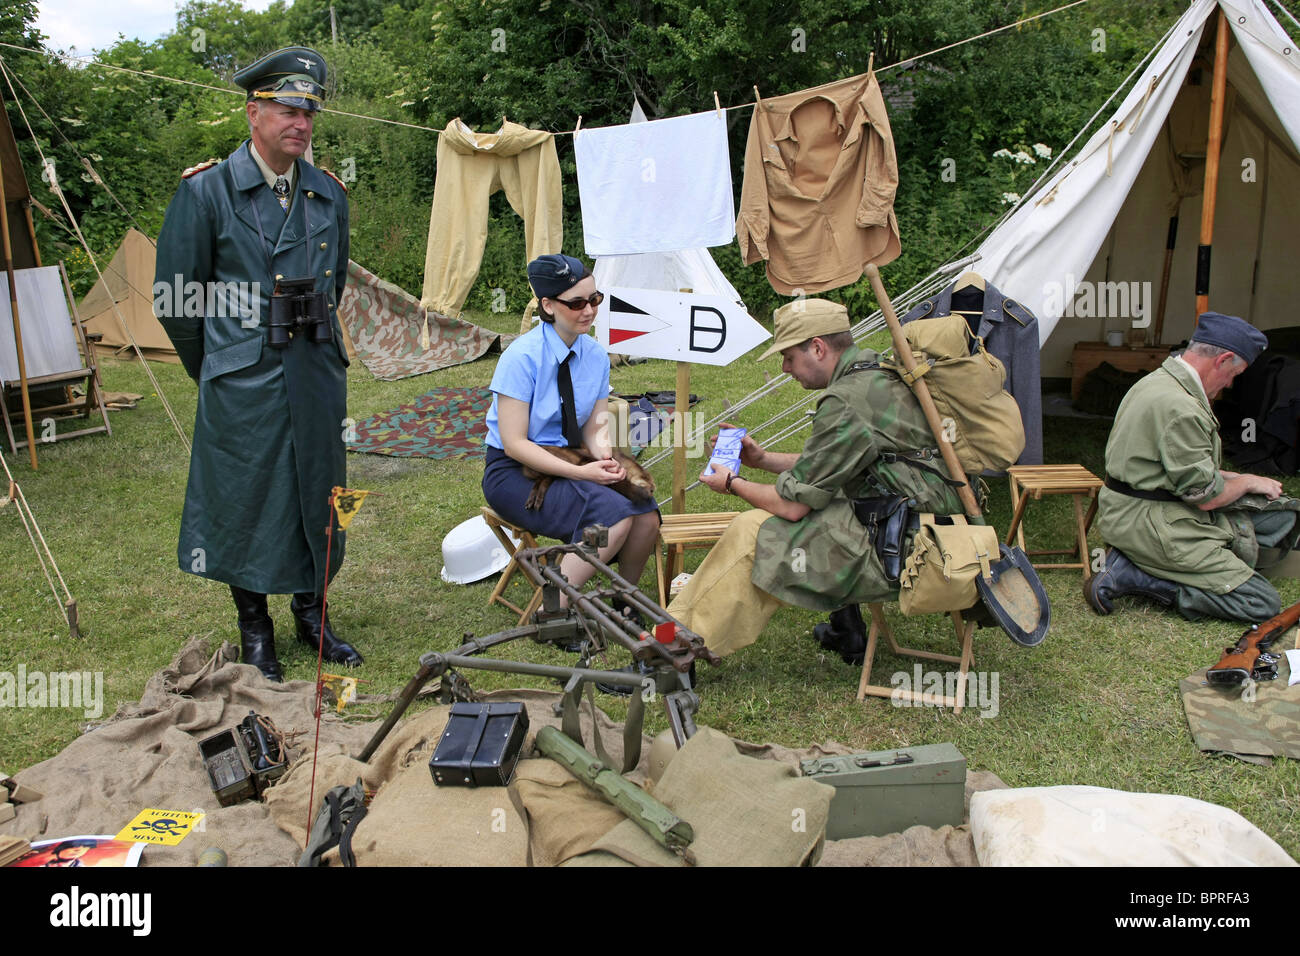 WW2 Reenactment camp of Erwin Rommel during his time in Normandy - Stock Image